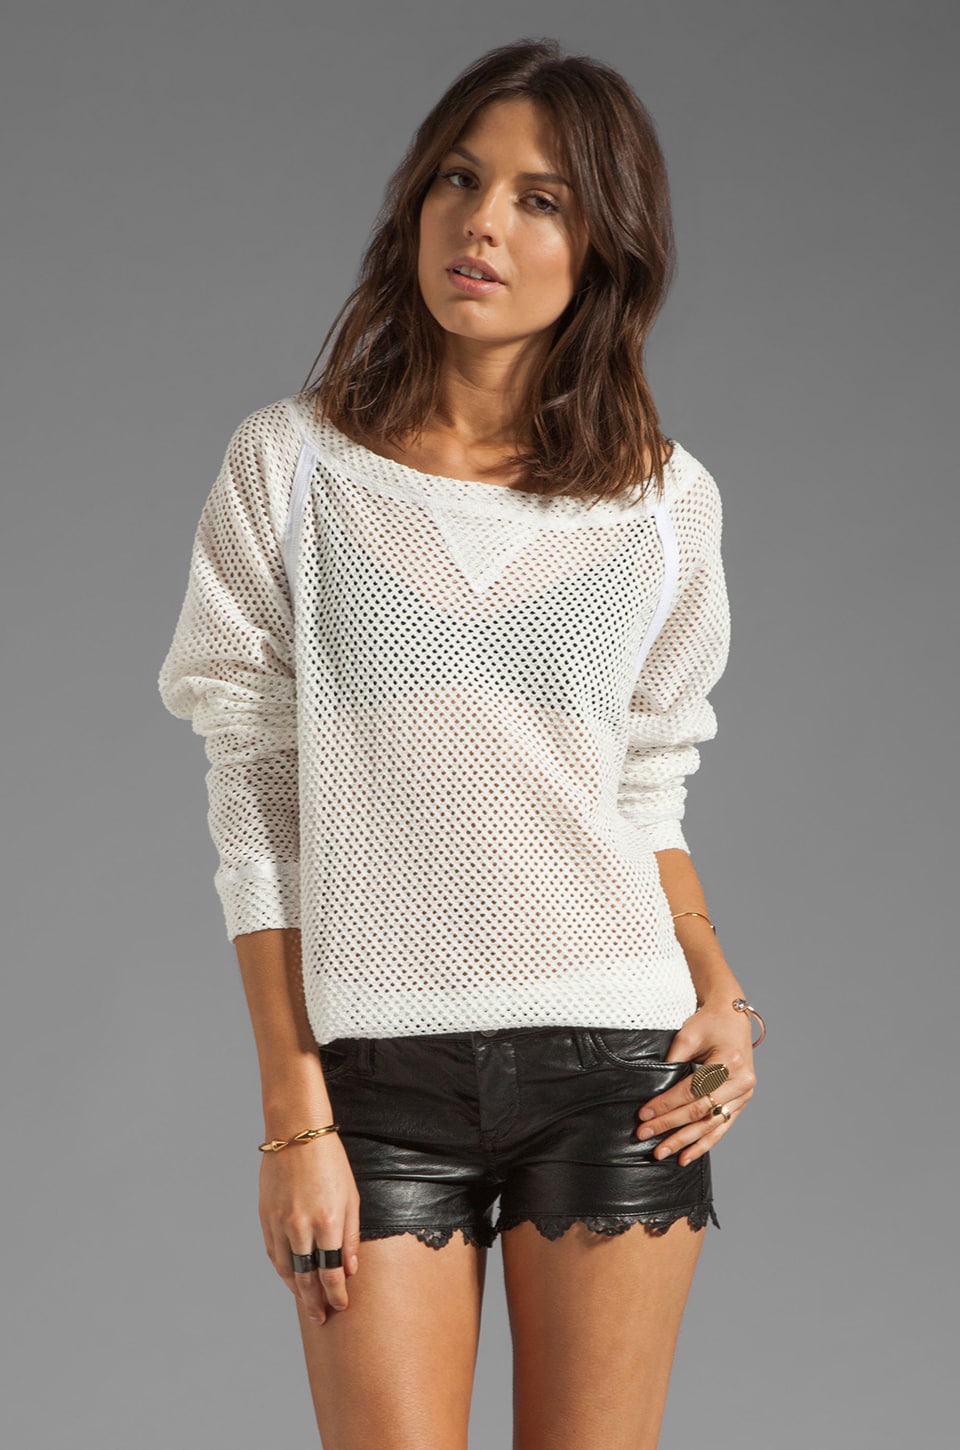 Tylie Cotton Crochet Off The Shoulder Raglan Tee in White